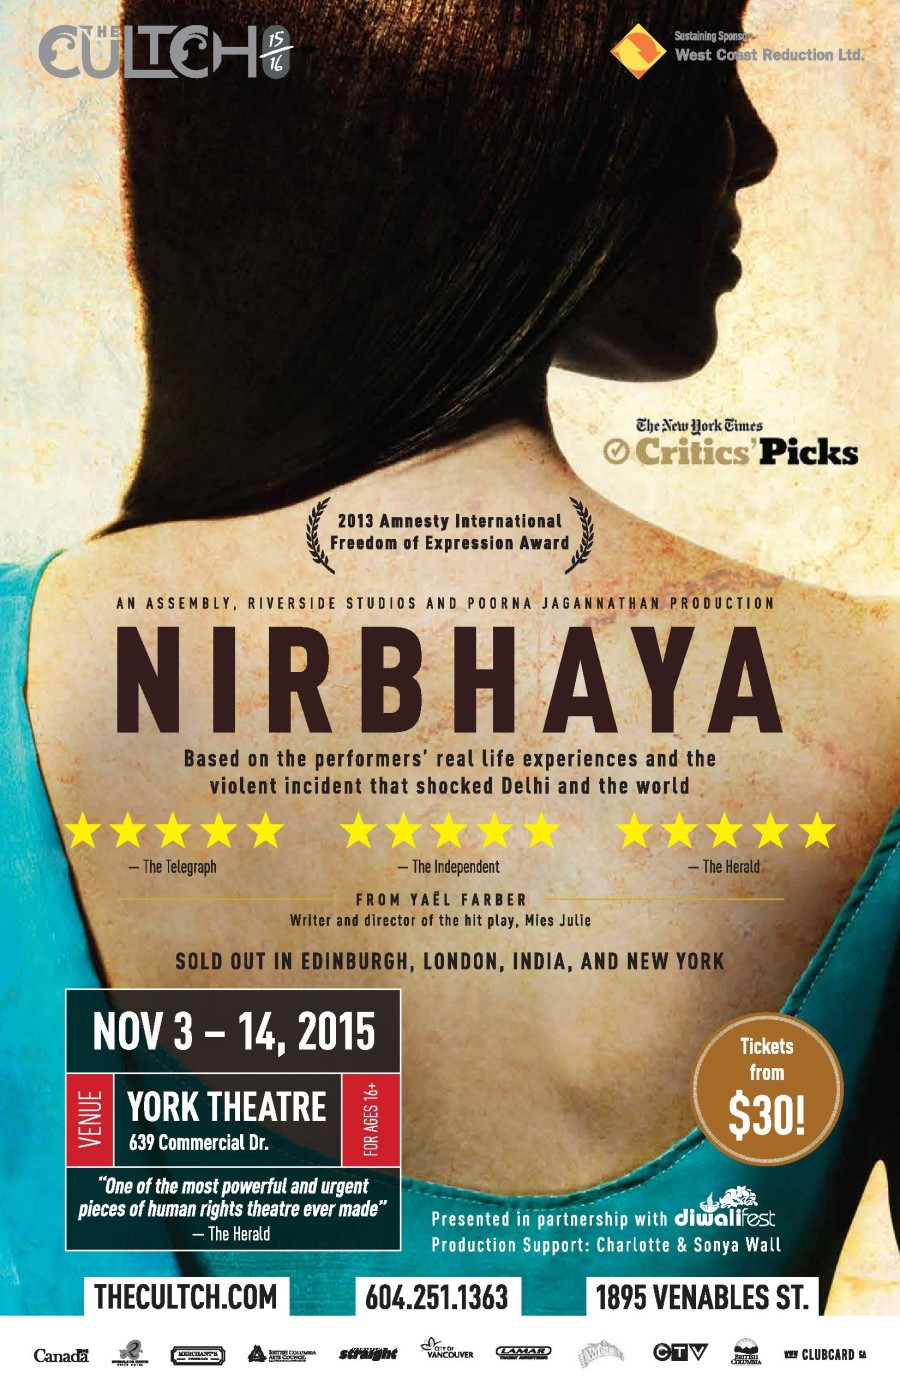 Nirbhaya_11x17poster_v5_OUTLINES_lowres-page-001